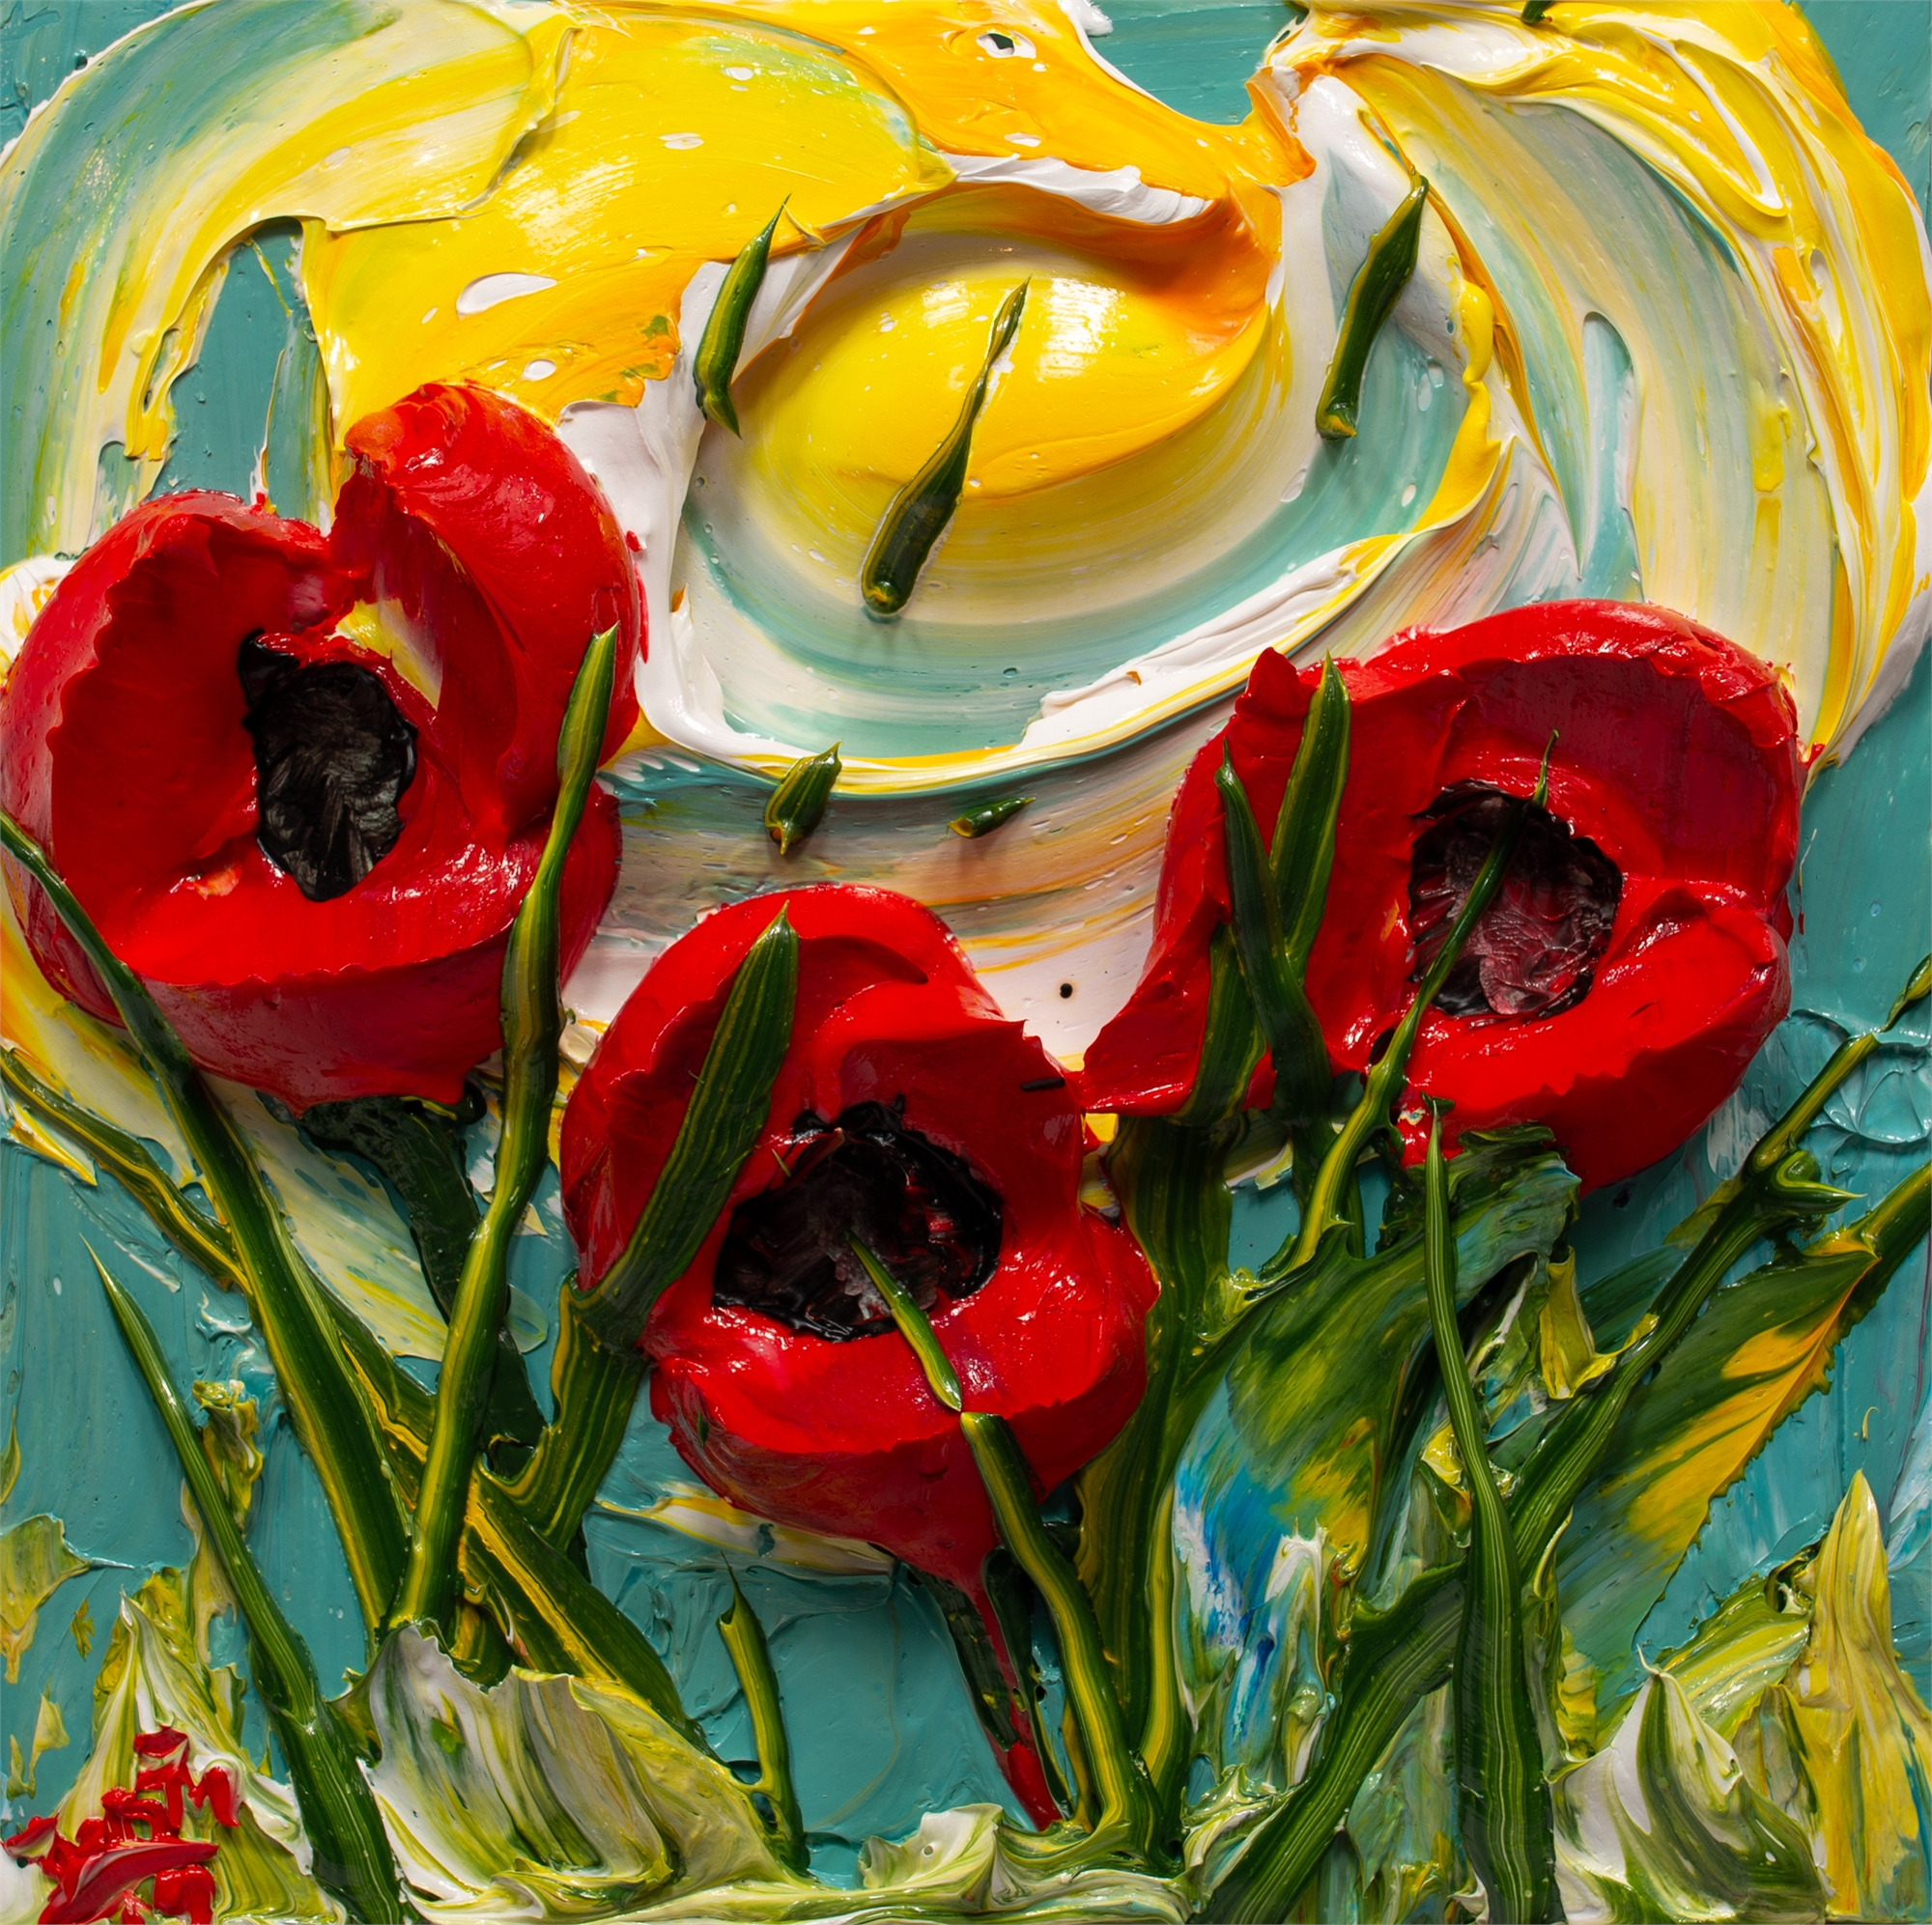 POPPY FLOWERS-PF-12X12-2019-176 by JUSTIN GAFFREY